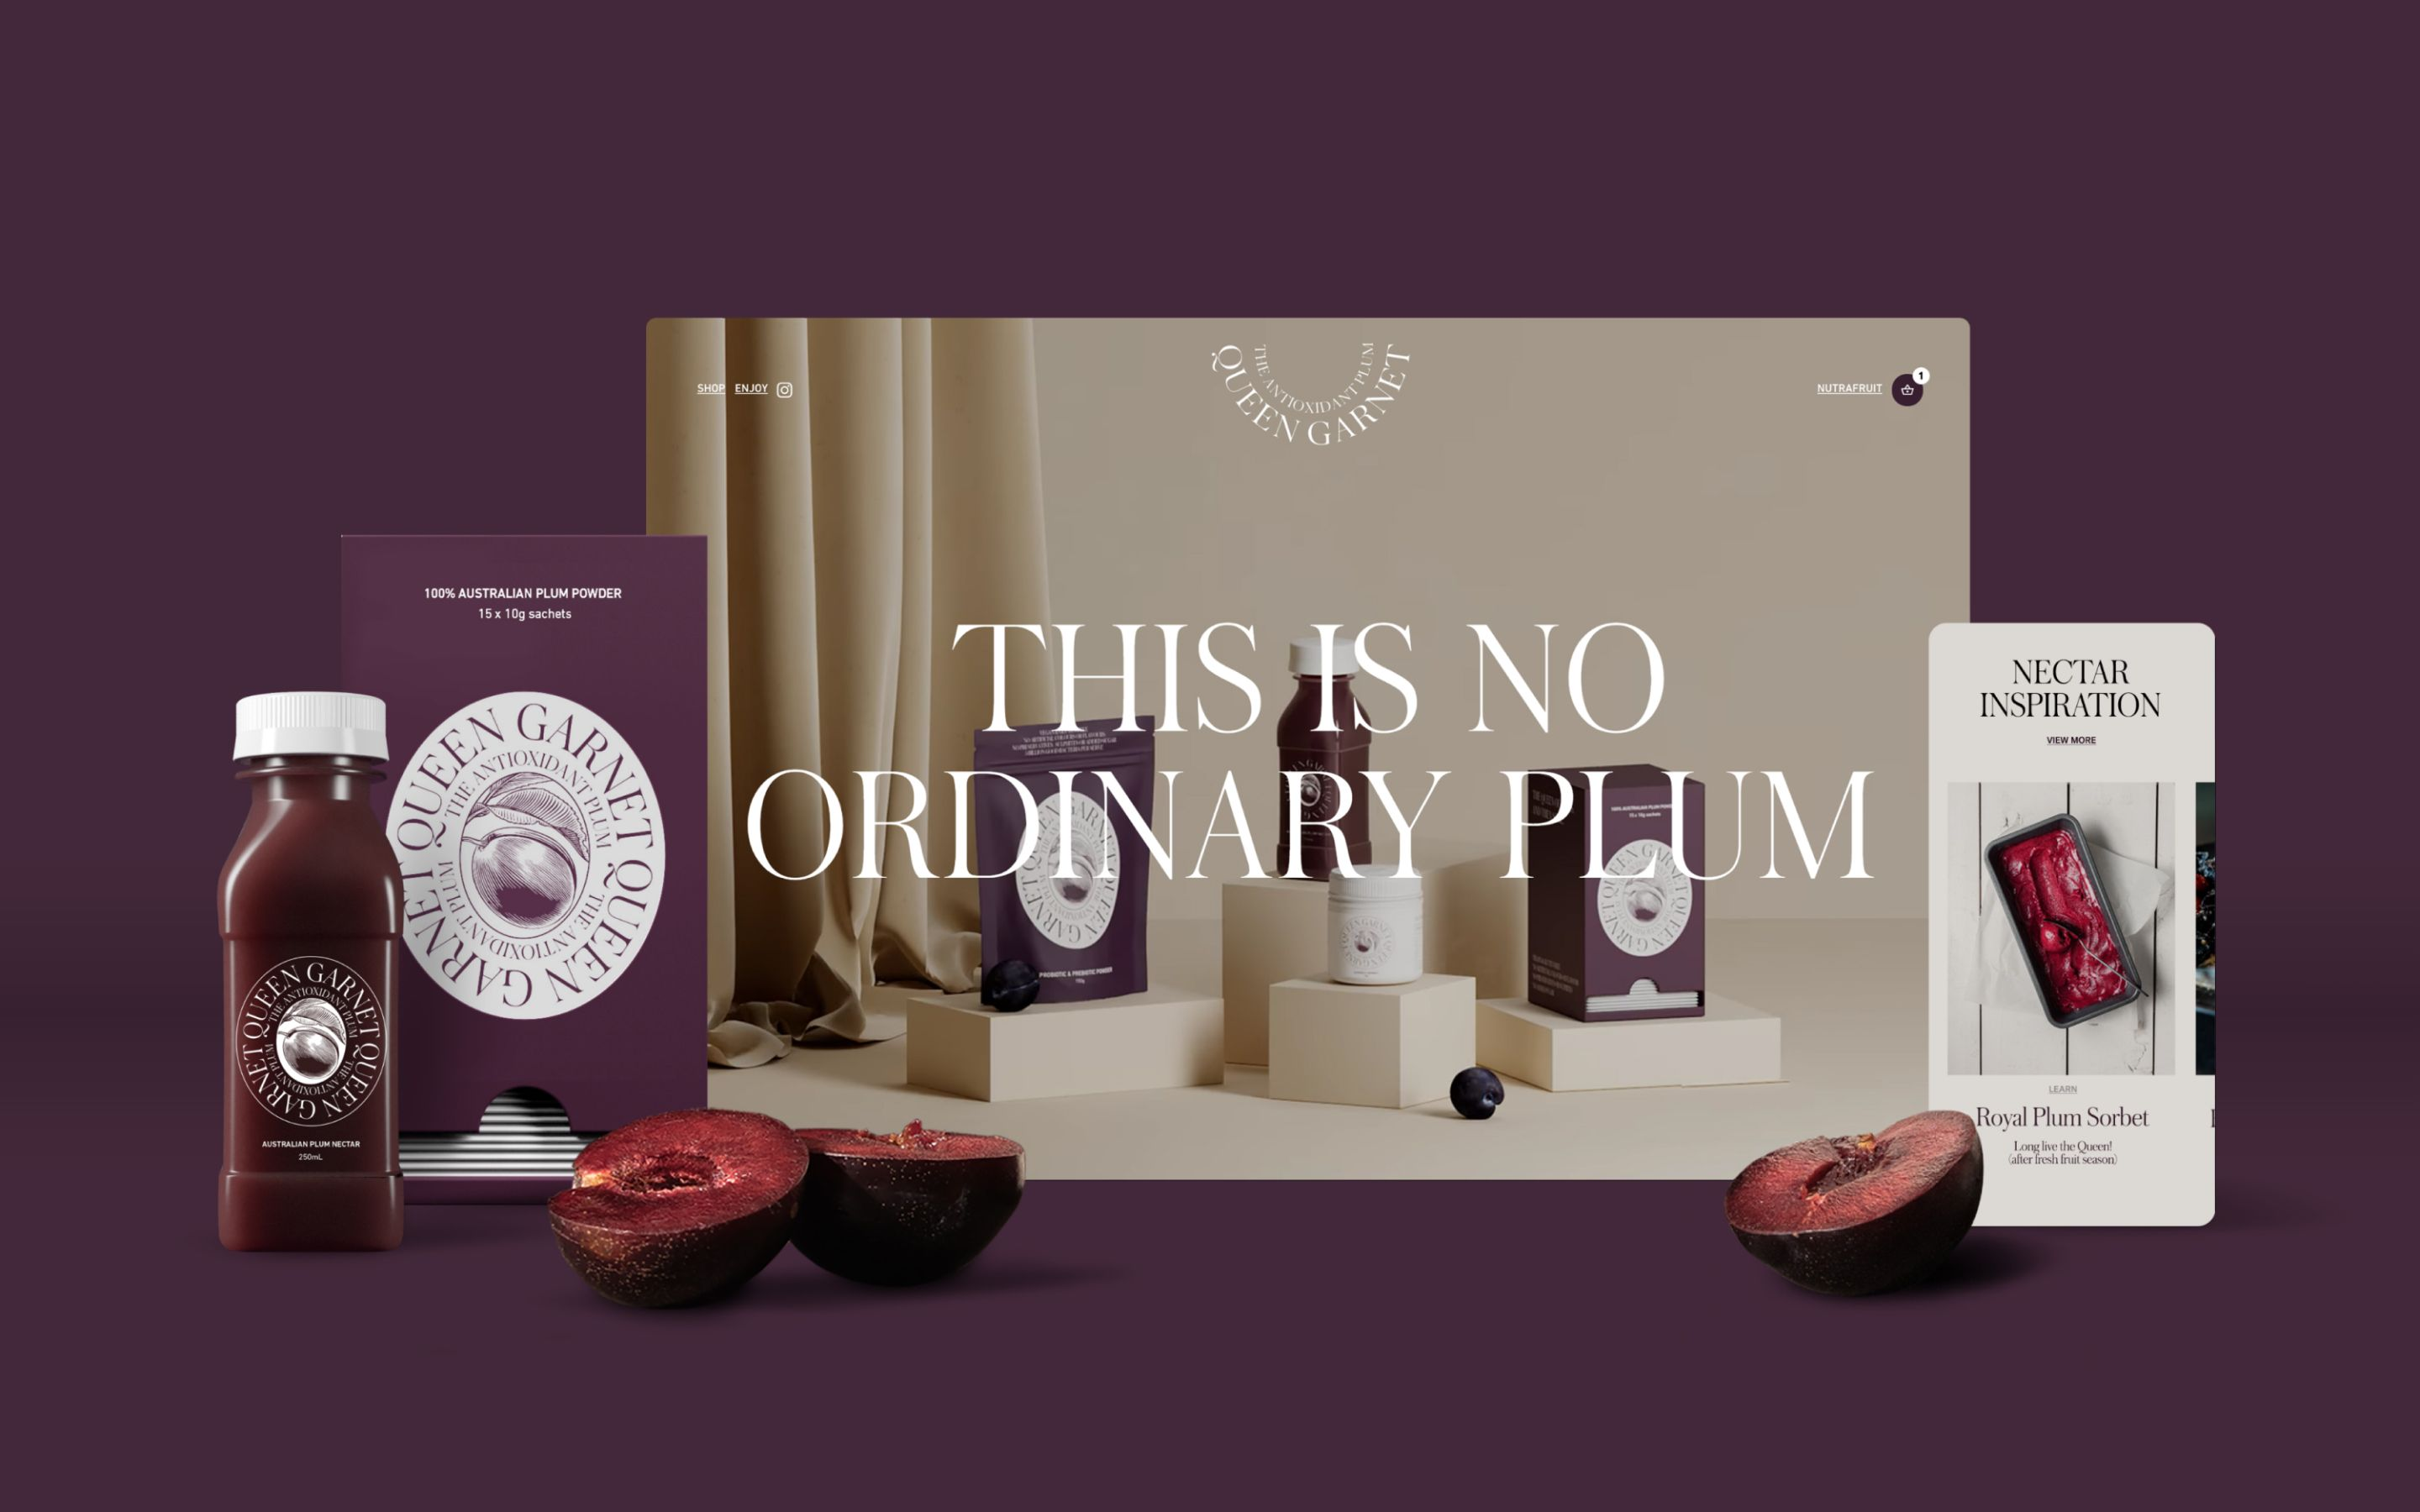 Array of Queen Garnet plums and products, against screenshots of the new website